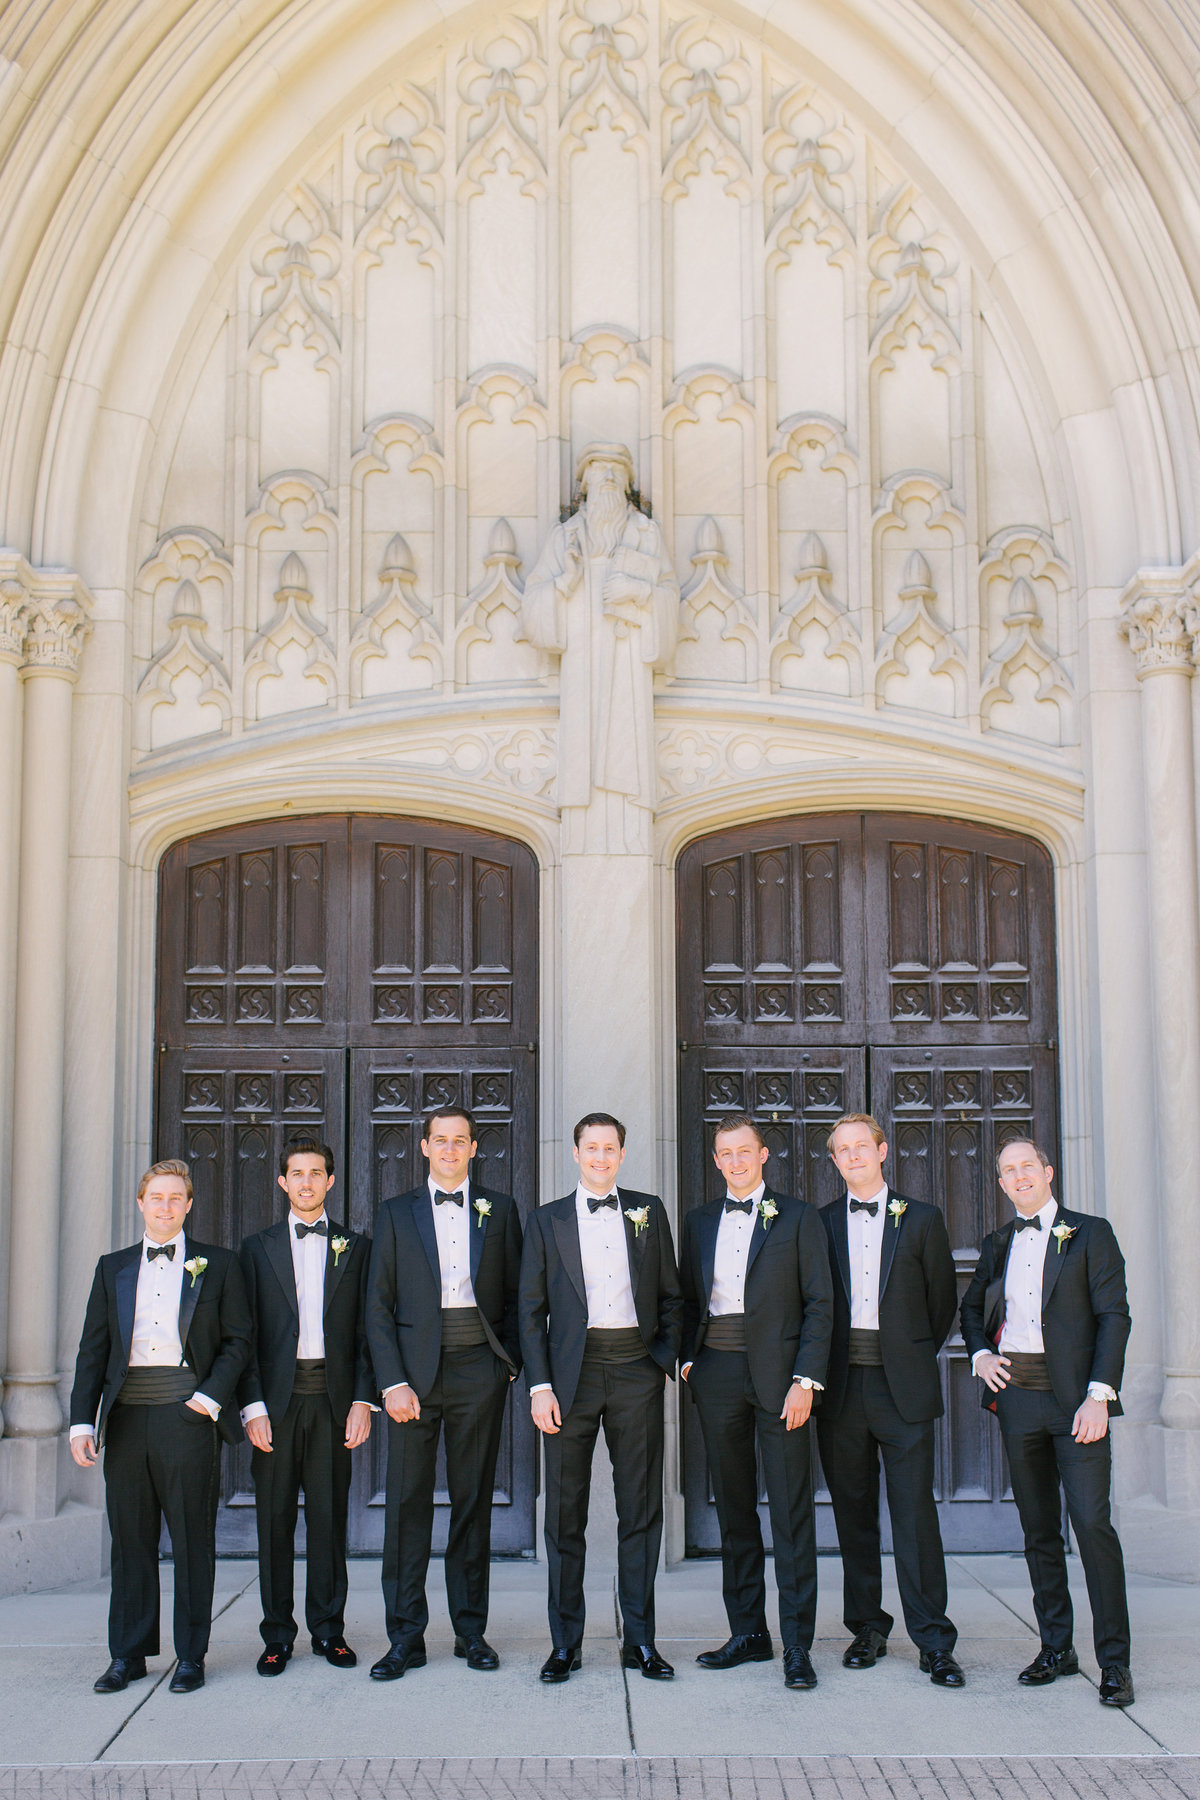 Scottish Rite Cathedral Wedding Lace Wedding Bride and Groom Groomsmen Photo